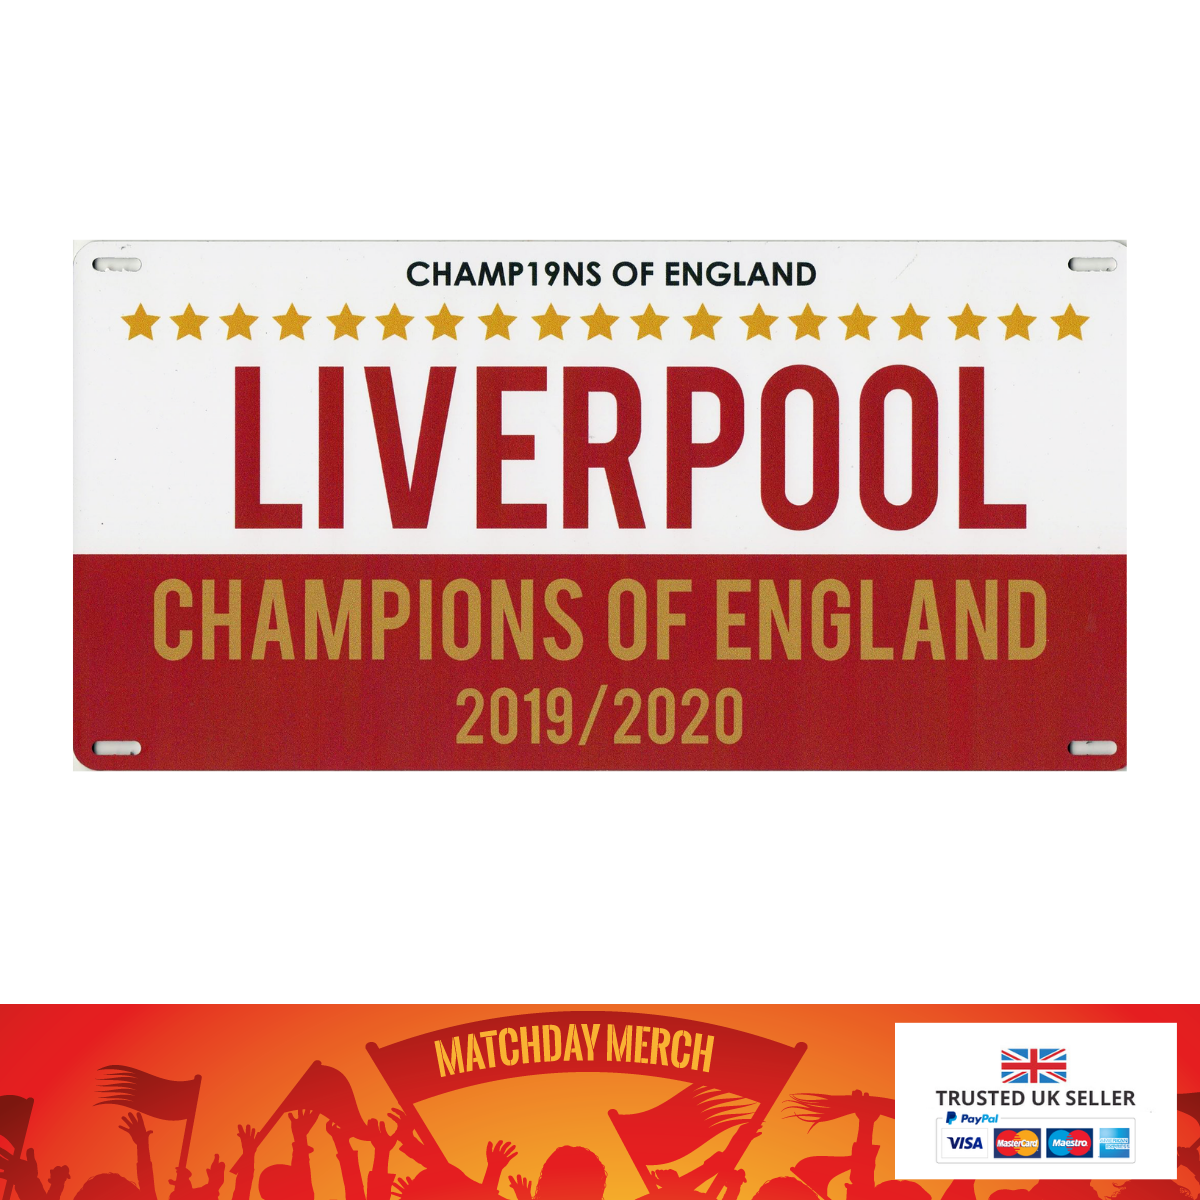 Liverpool Champions 2020 Metal Wall Plaque 30 x 15 cm Great Gift or Keepsake